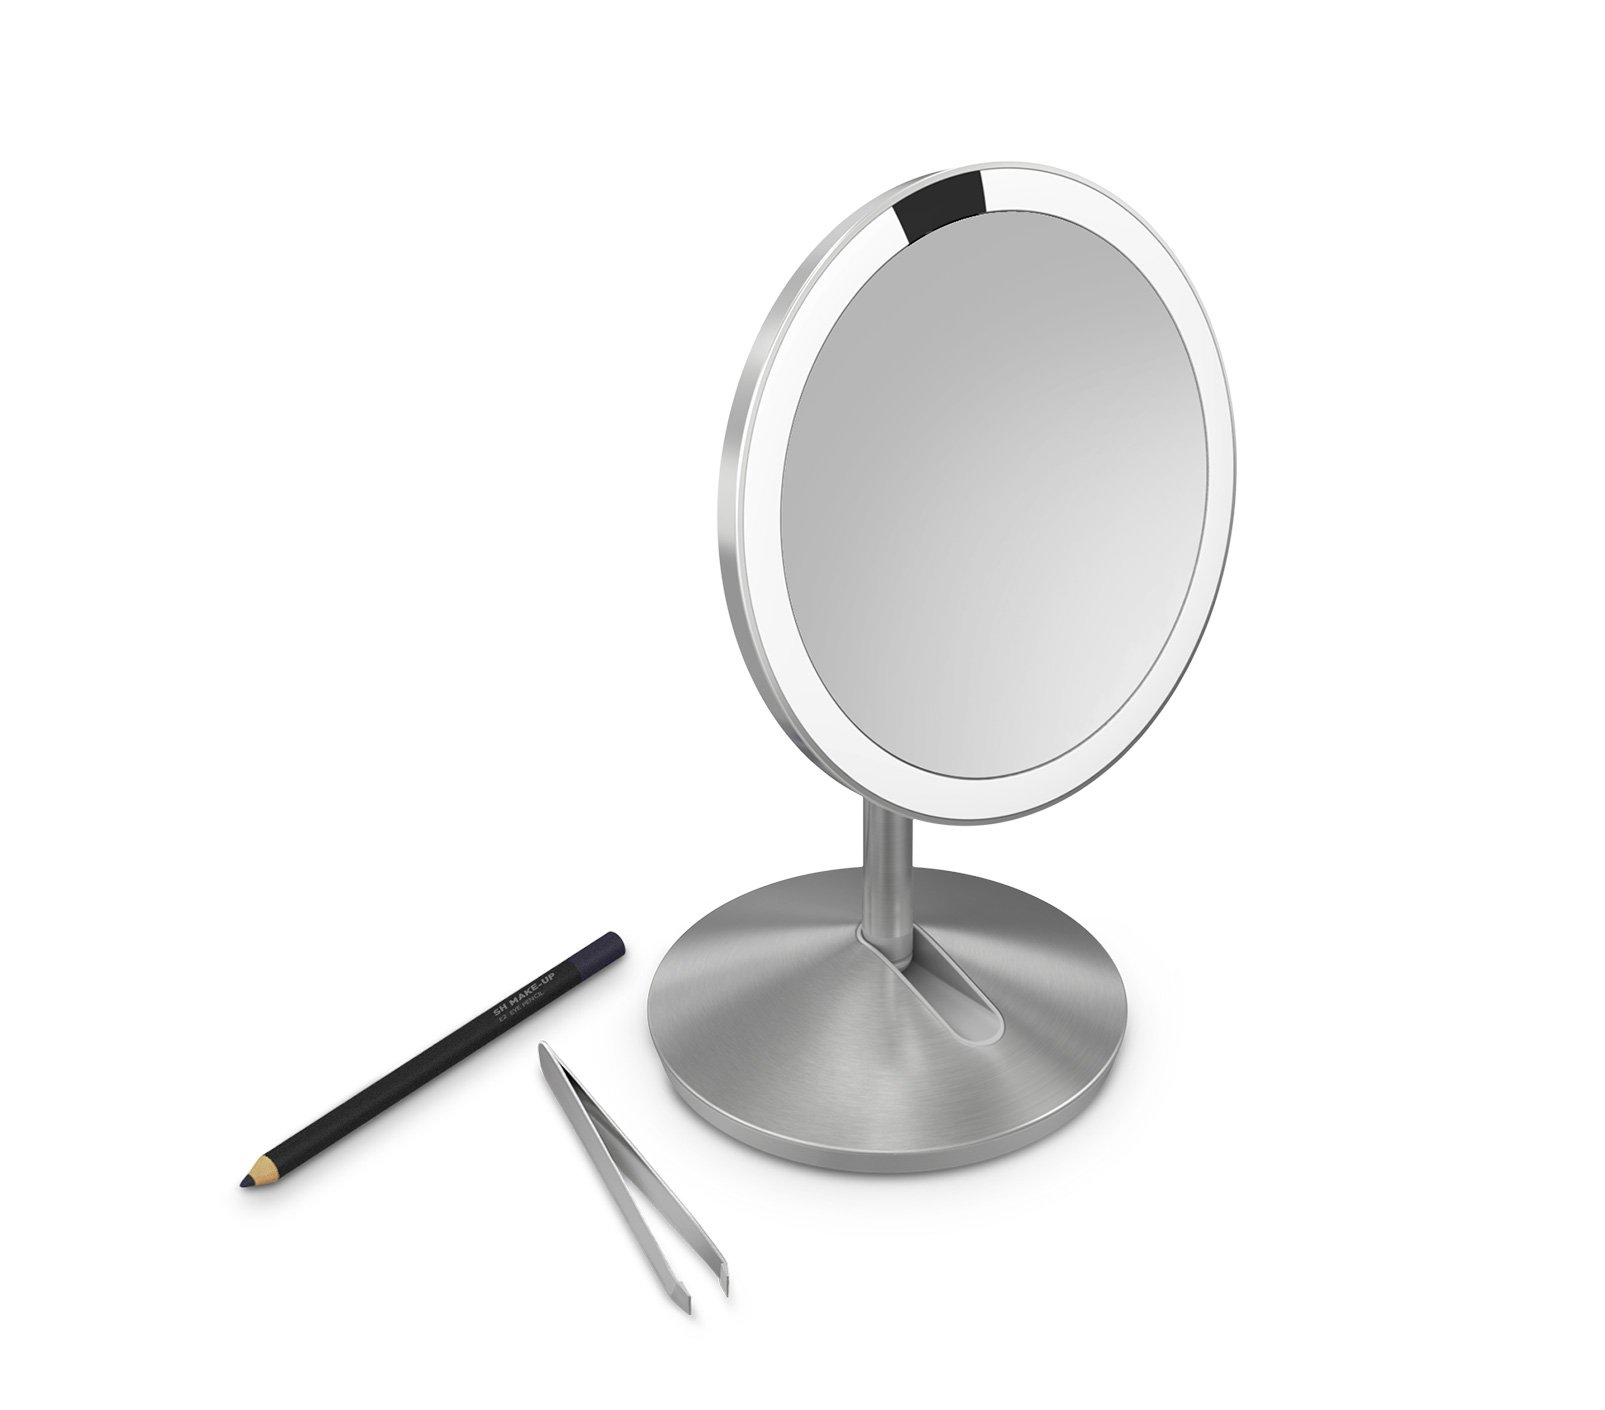 simplehuman 5 inch Sensor Mirror, Lighted Makeup Mirror, 10x Magnification by simplehuman (Image #3)